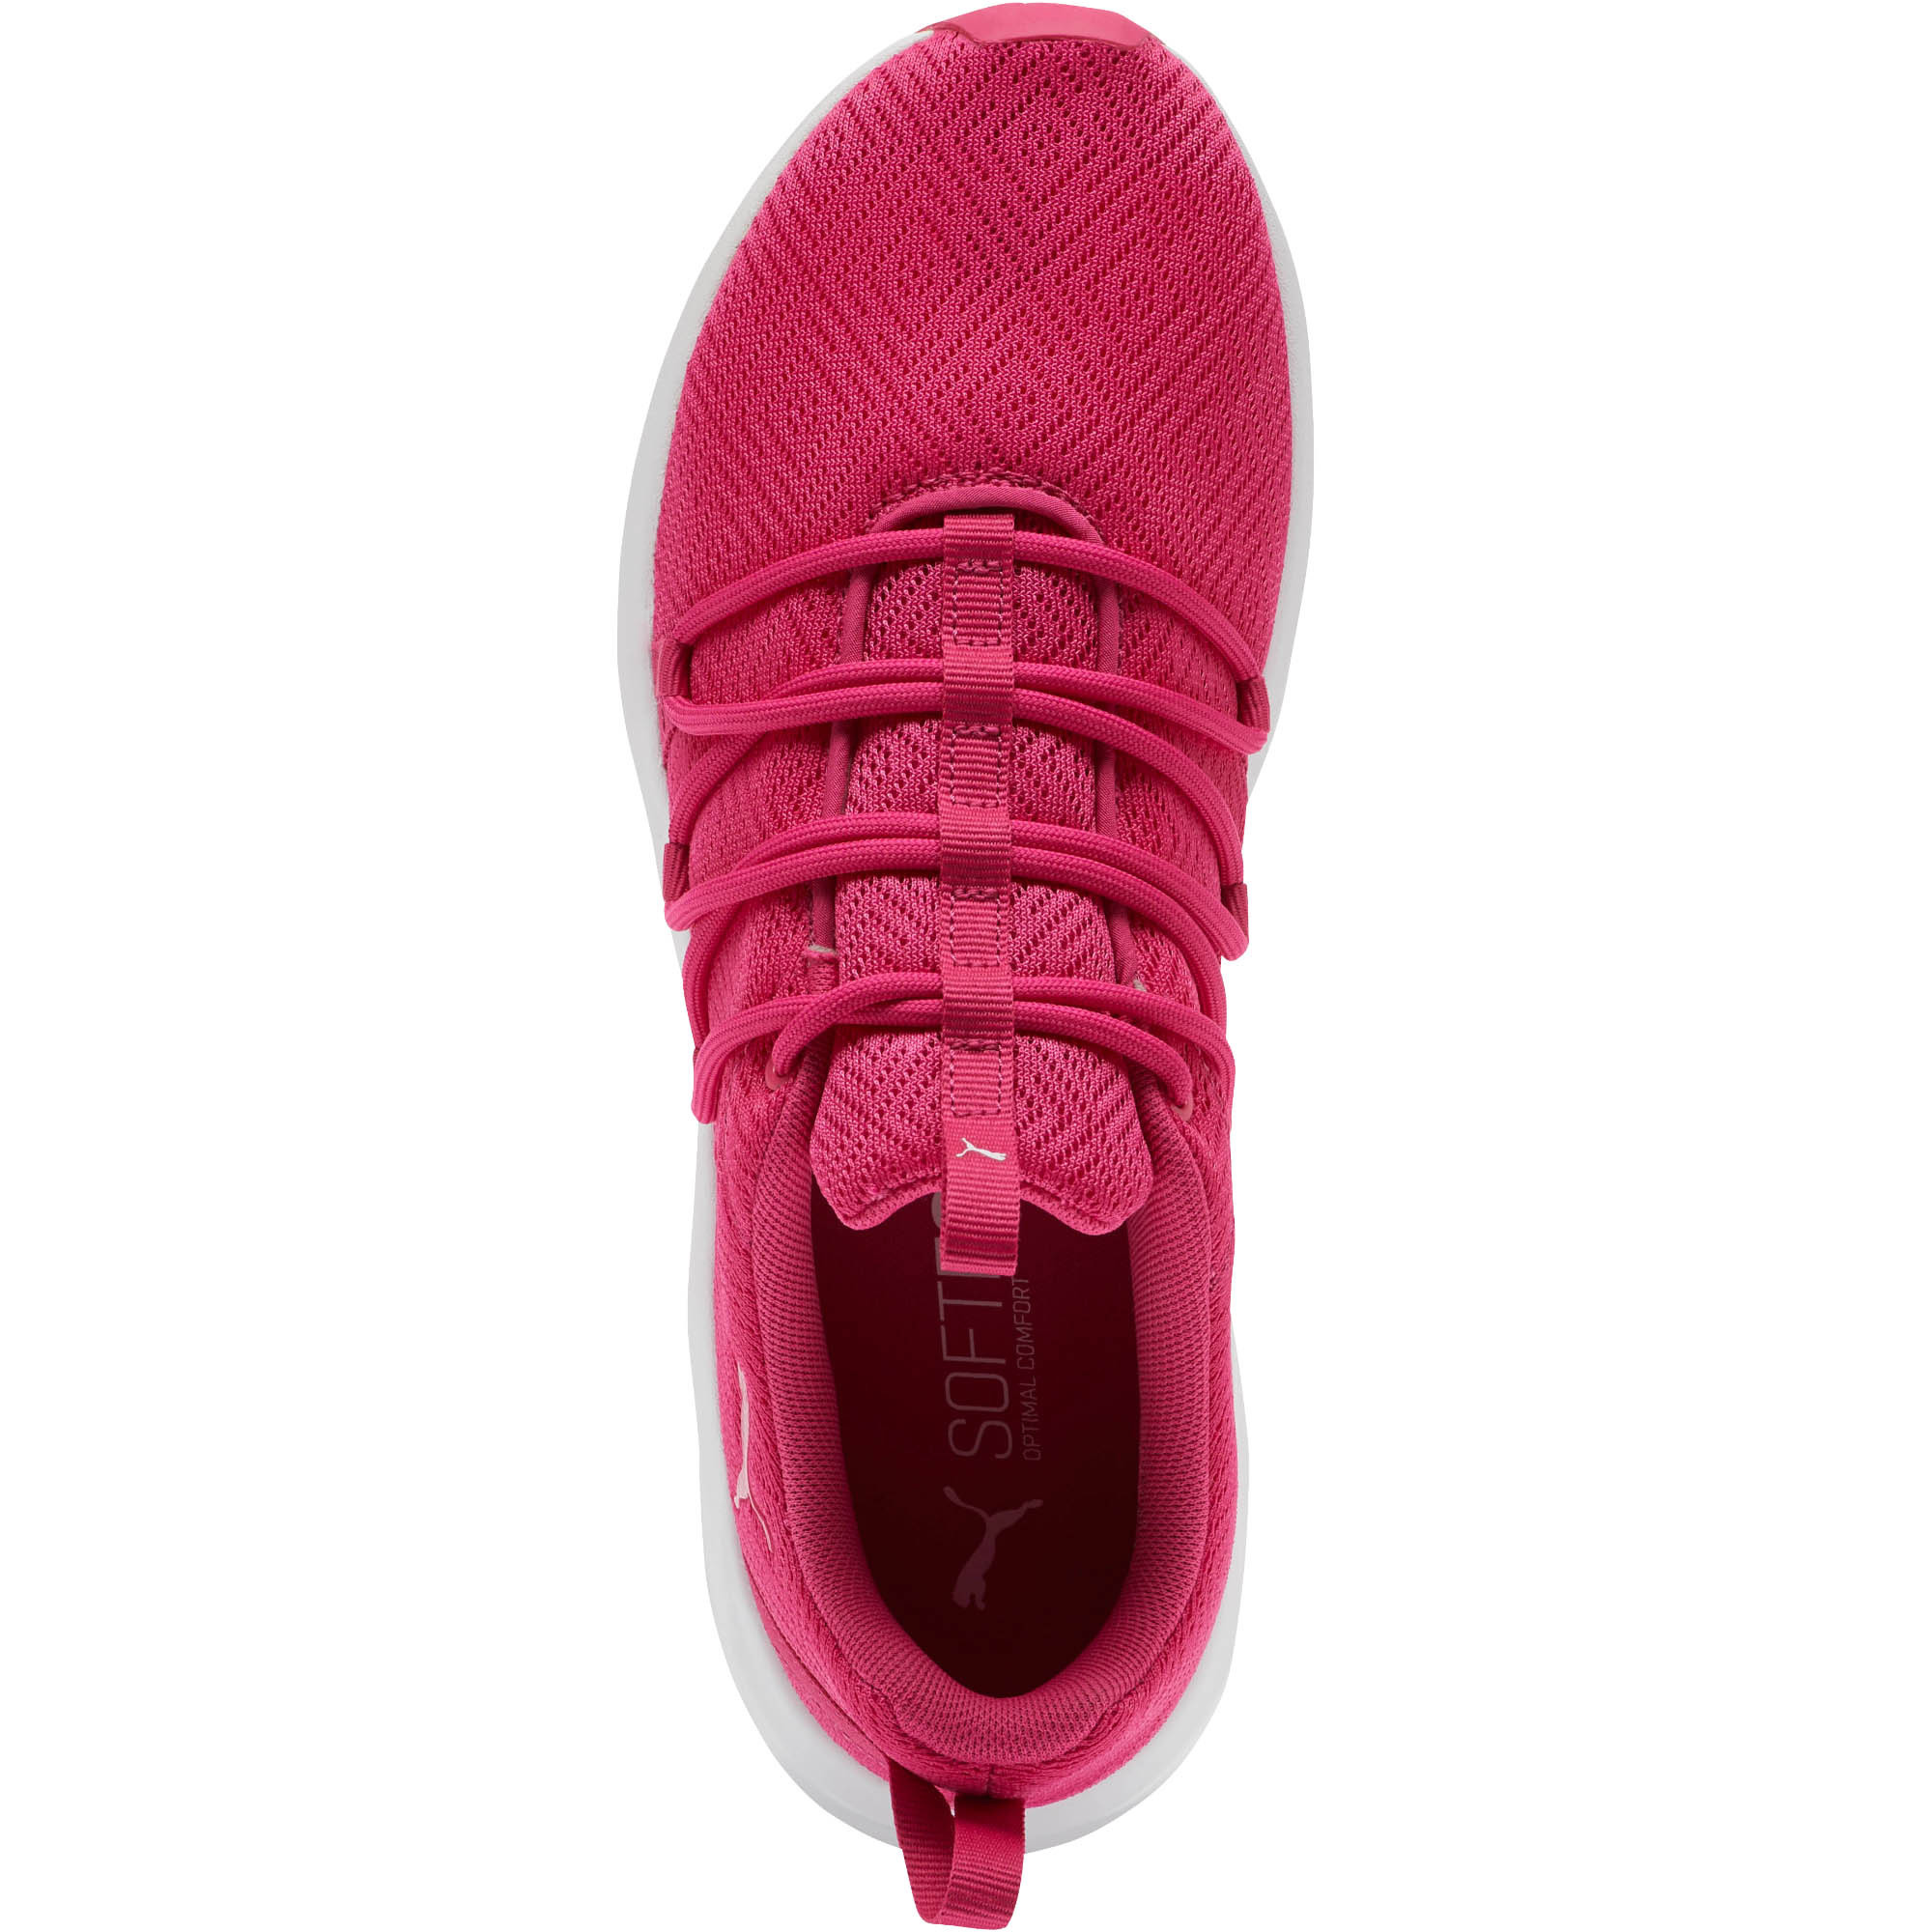 PUMA-Prowl-Alt-Stellar-Women-s-Training-Shoes-Women-Shoe-Training thumbnail 16